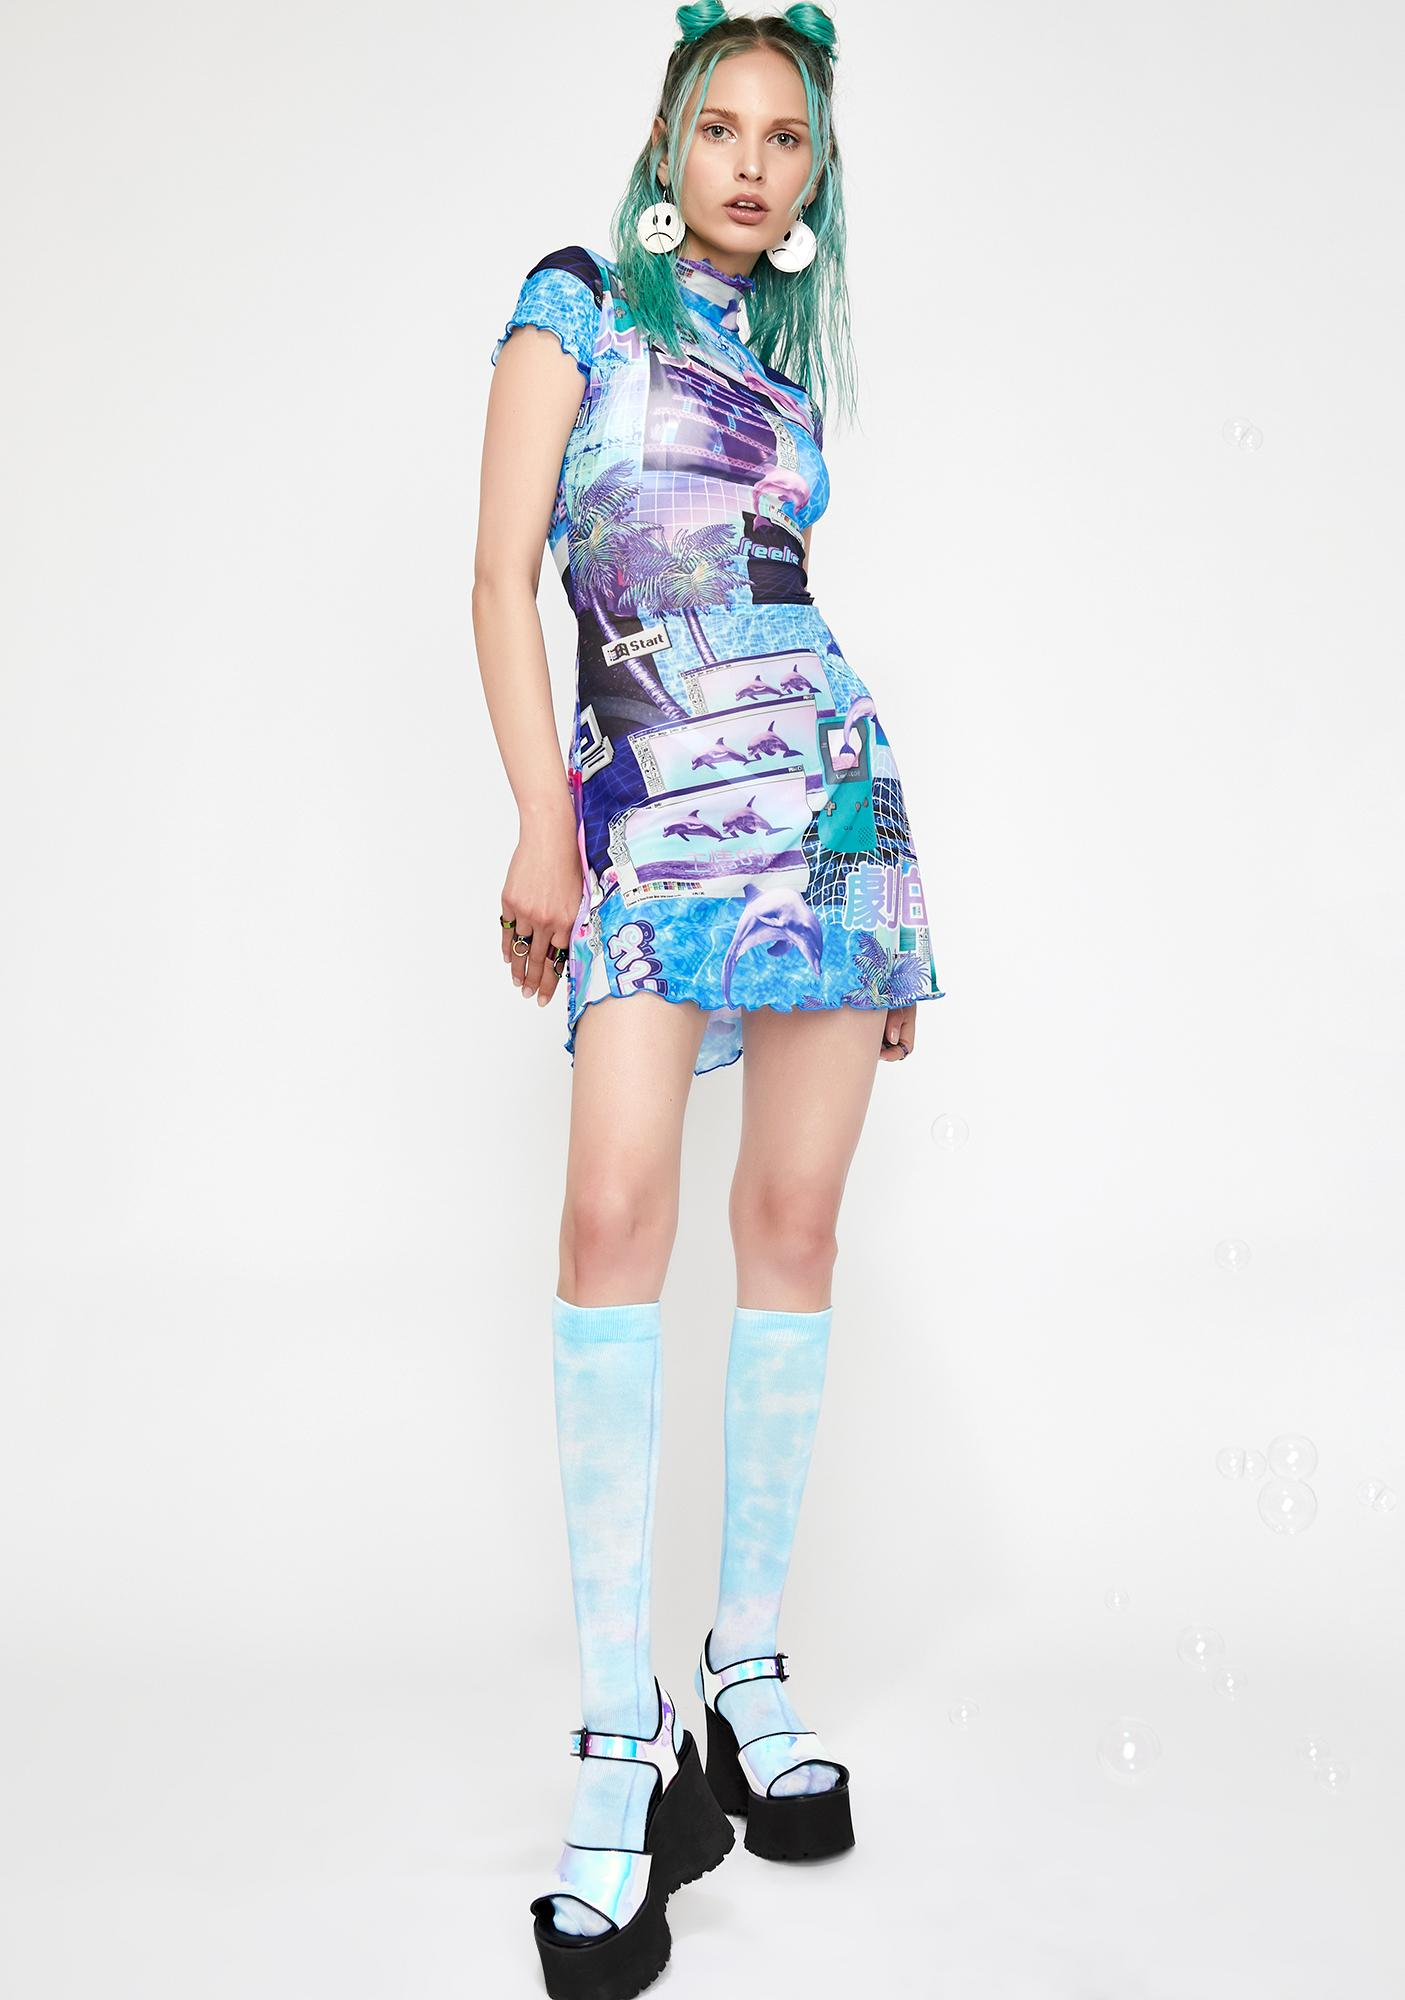 HOROSCOPEZ Cyber Splash Mesh Dress